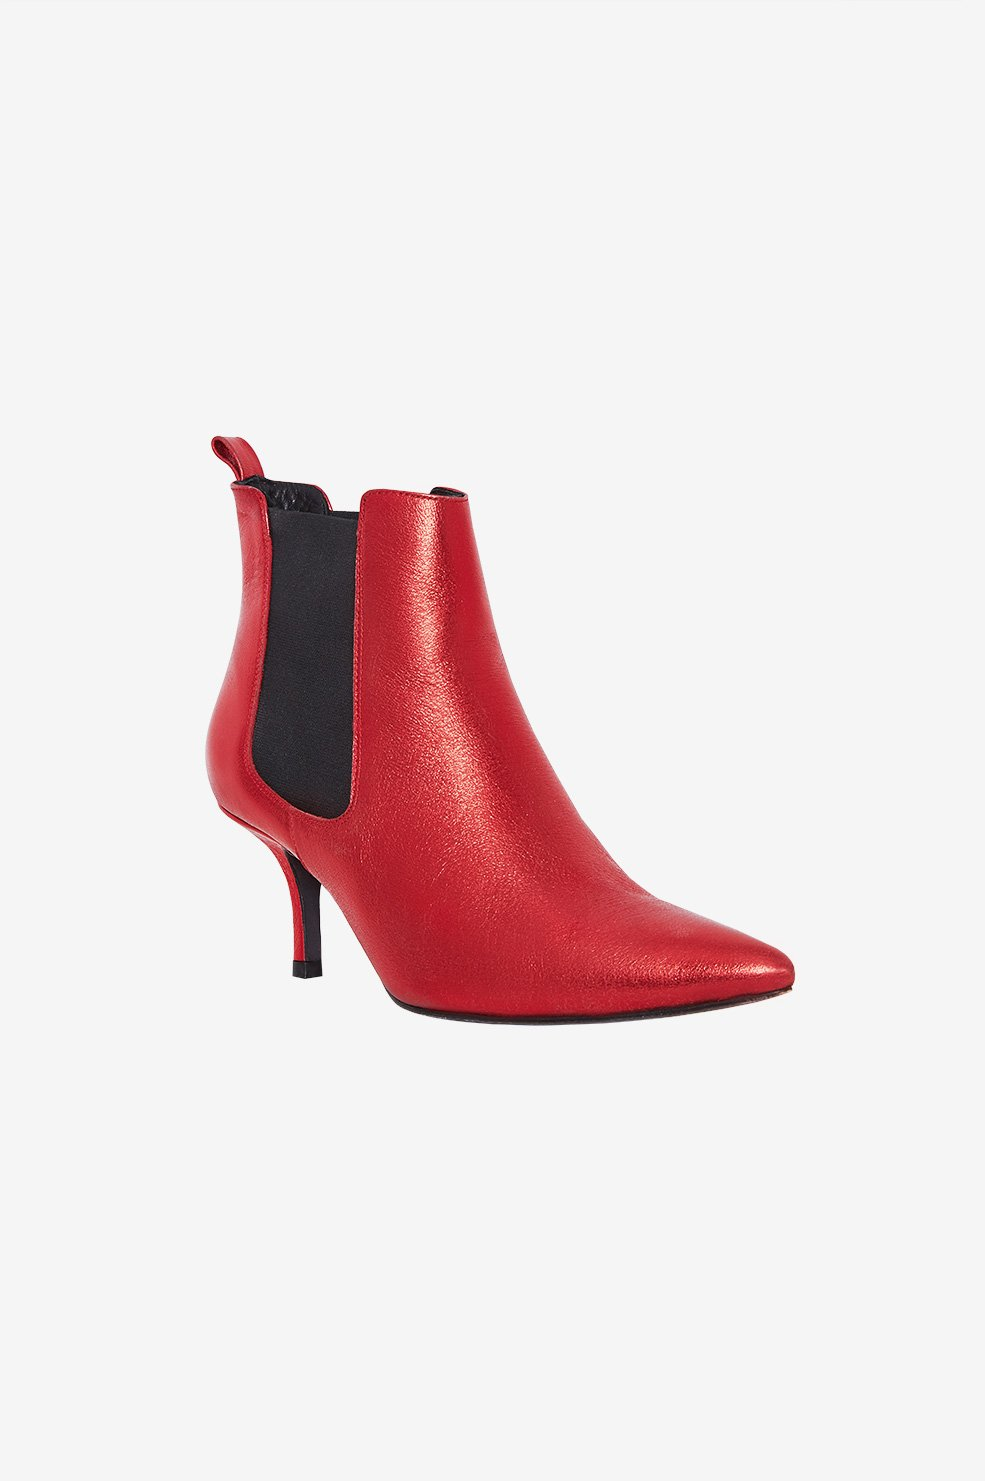 STEVIE BOOTS - RED METALLIC